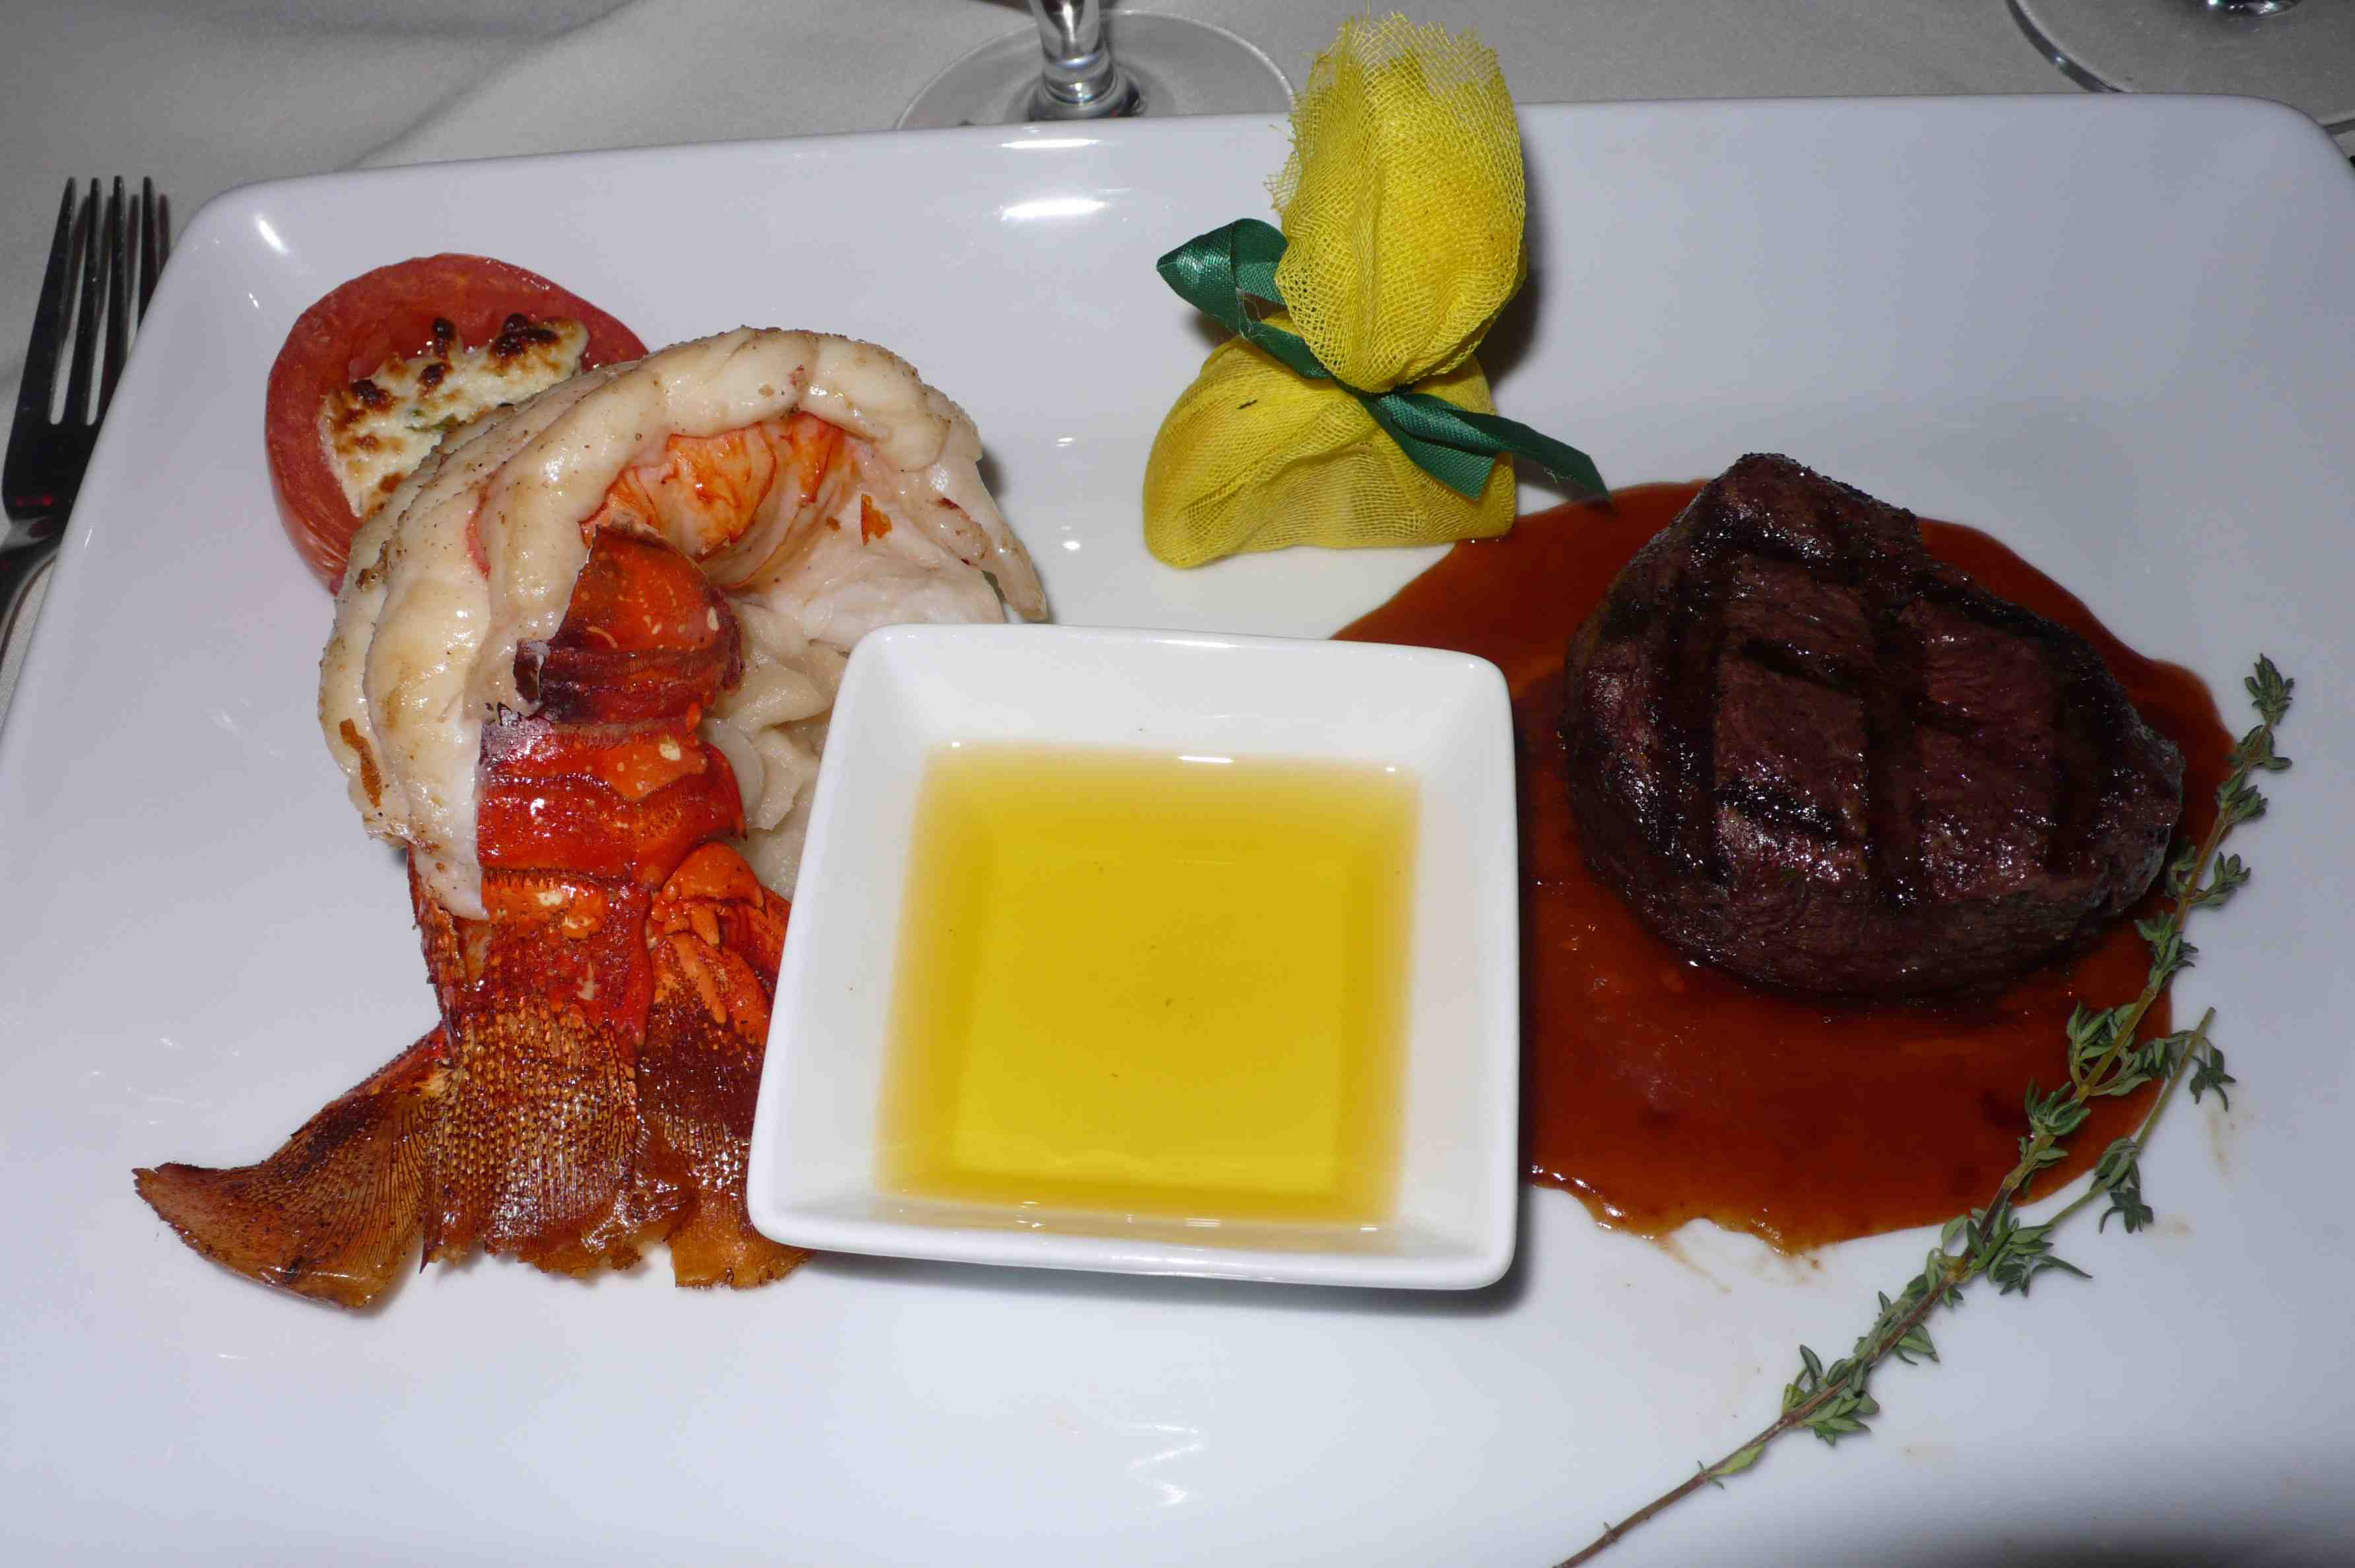 Surf and turf, lobster and filet